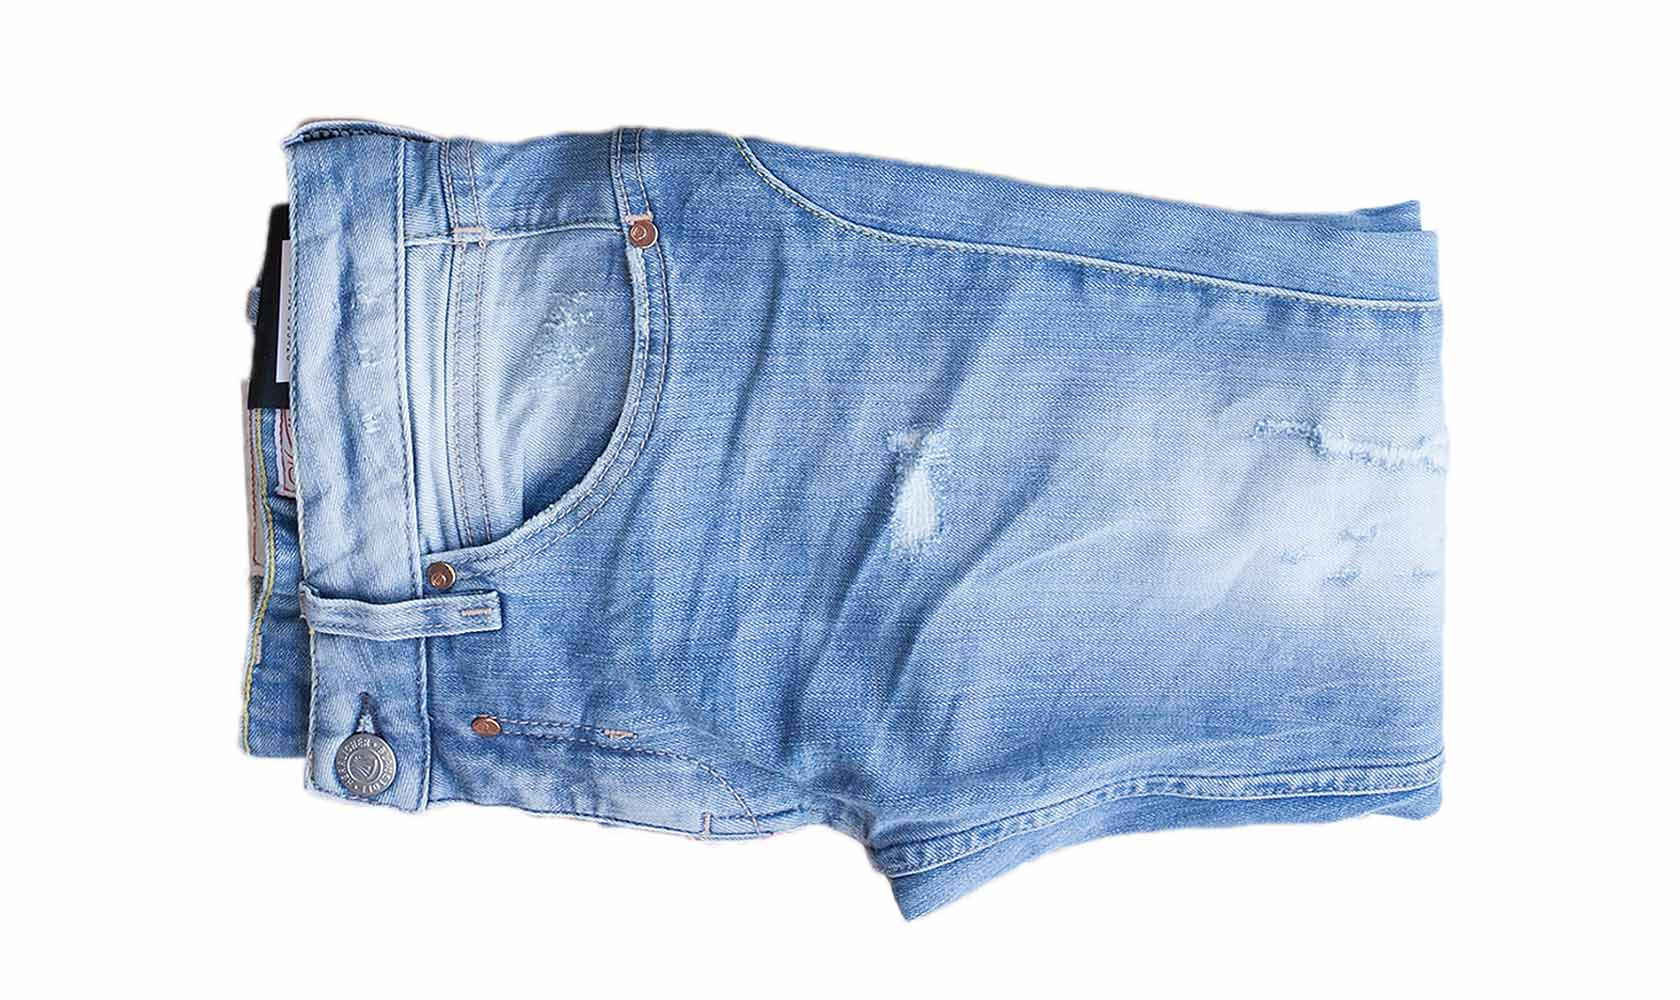 jeans_4_2